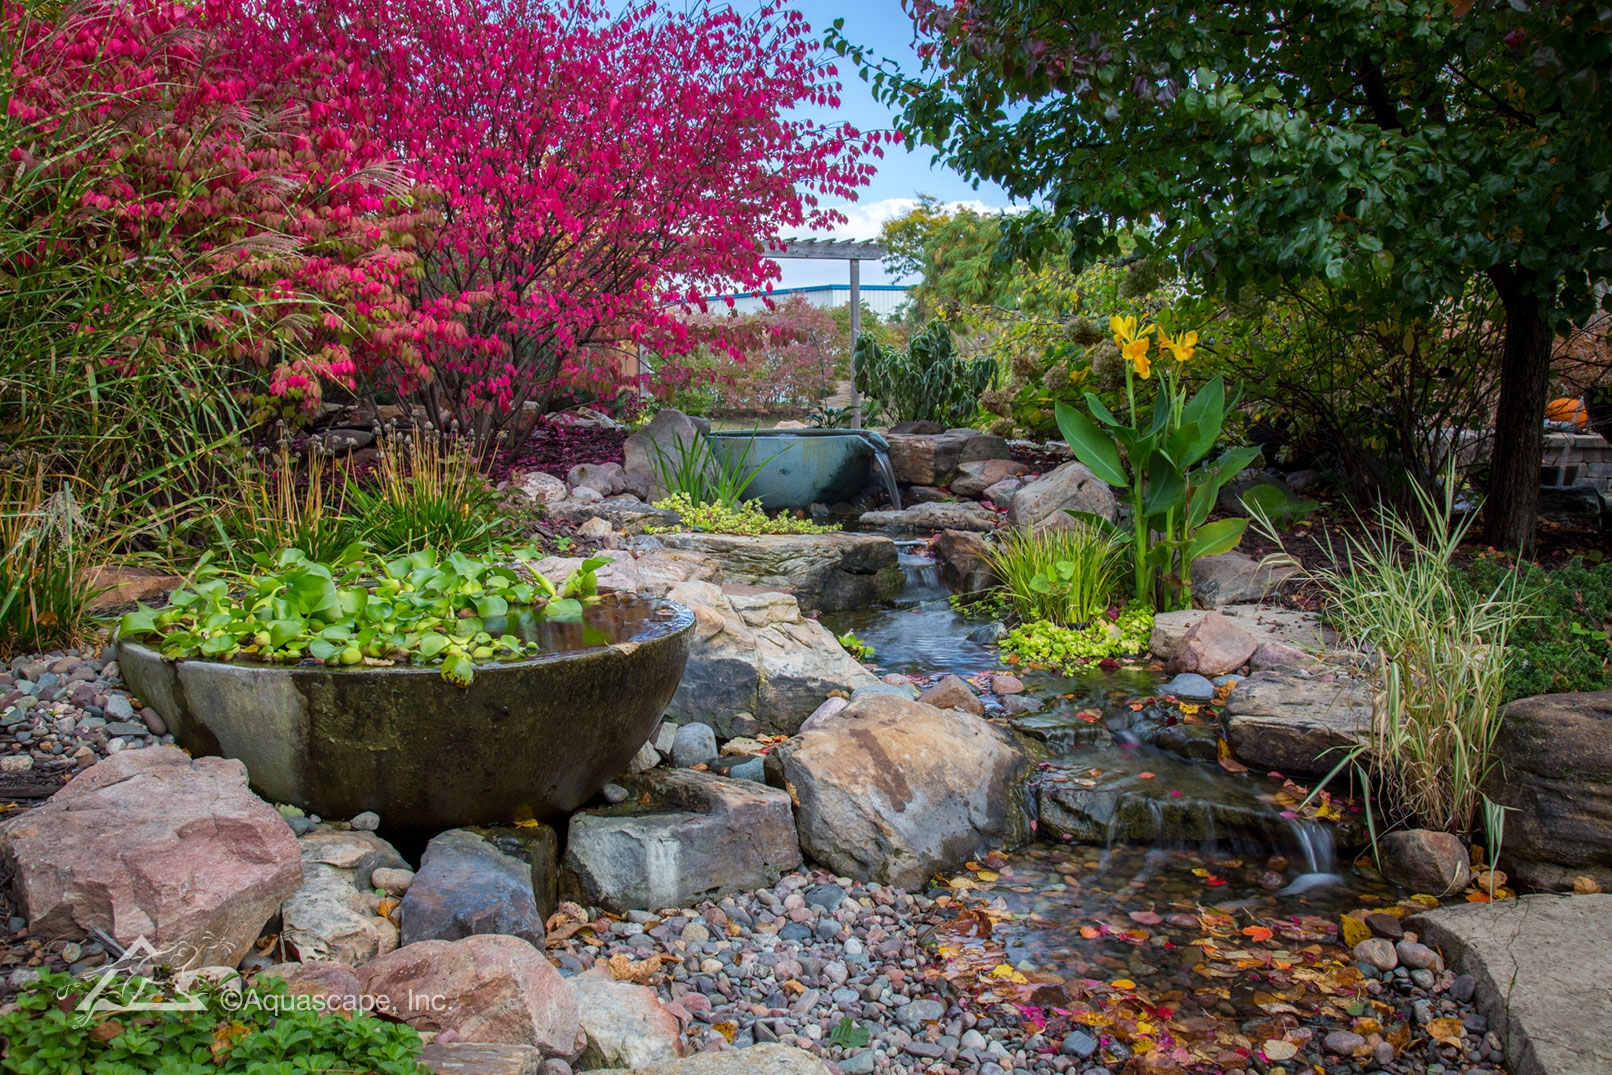 pondless waterfall with patio pond - aquascape, inc.